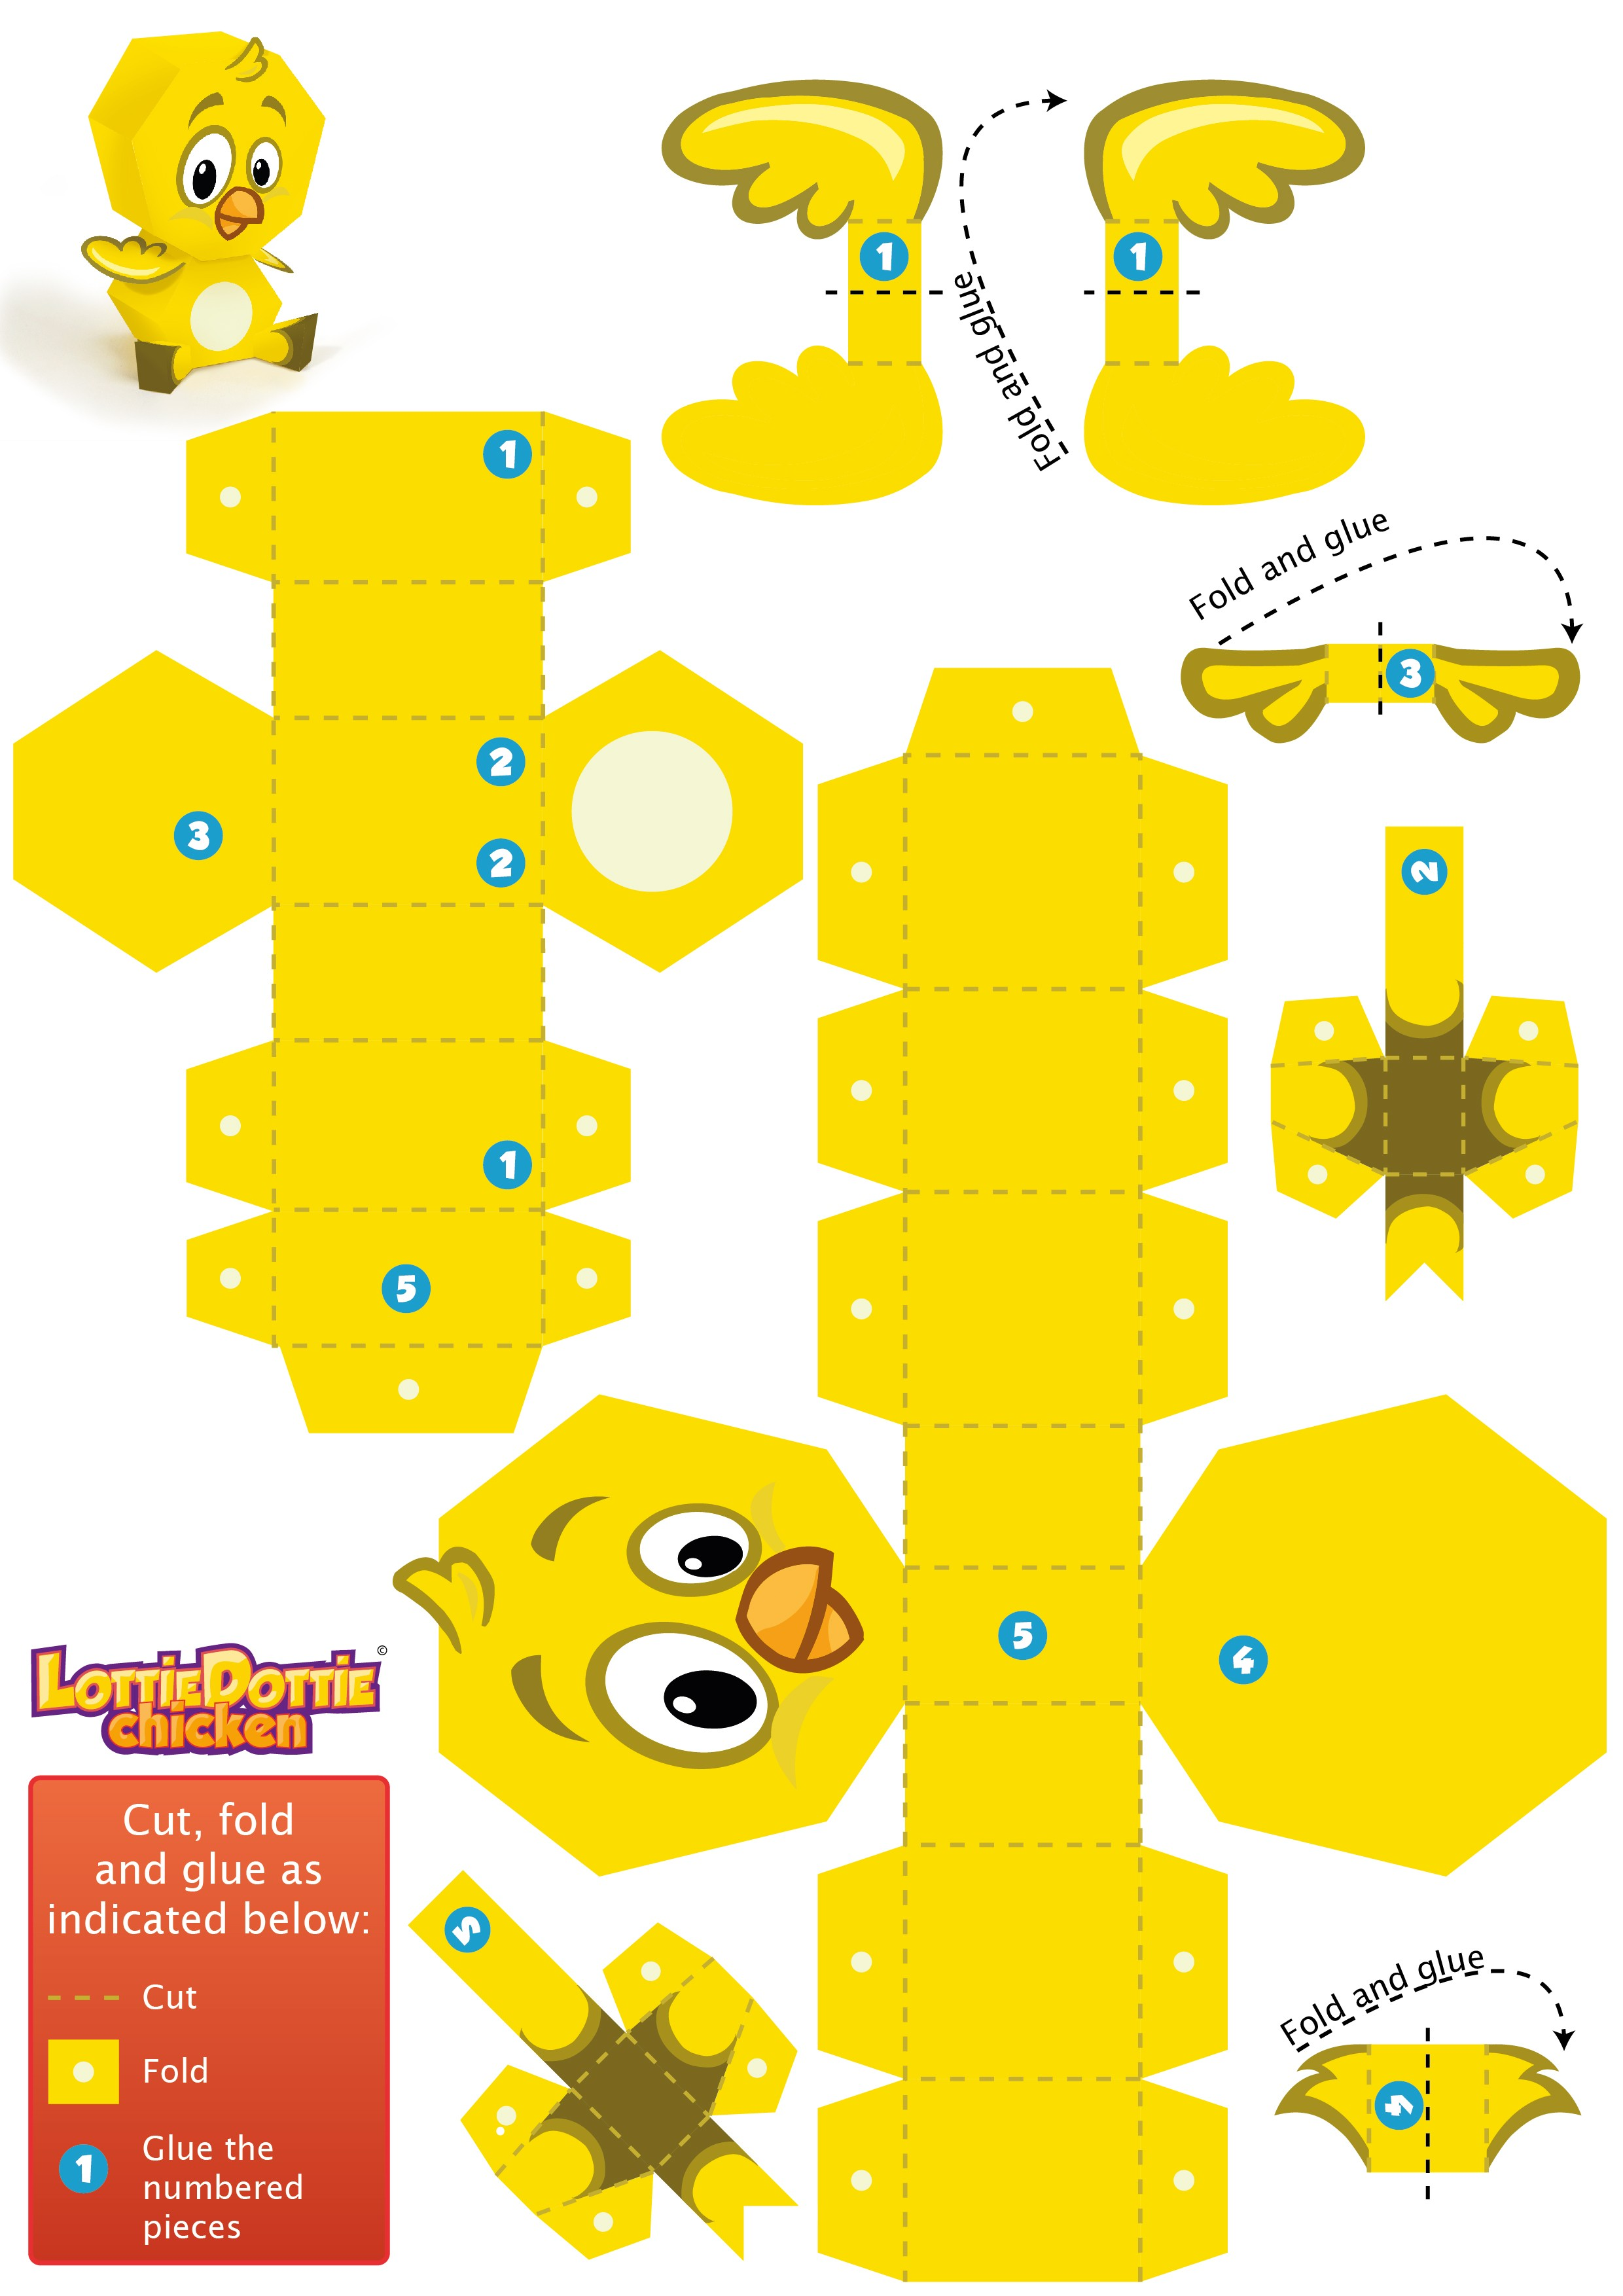 Uncategorized Paper Toys paper toys lottie dottie chicken official website yellowchickadee papertoy 01